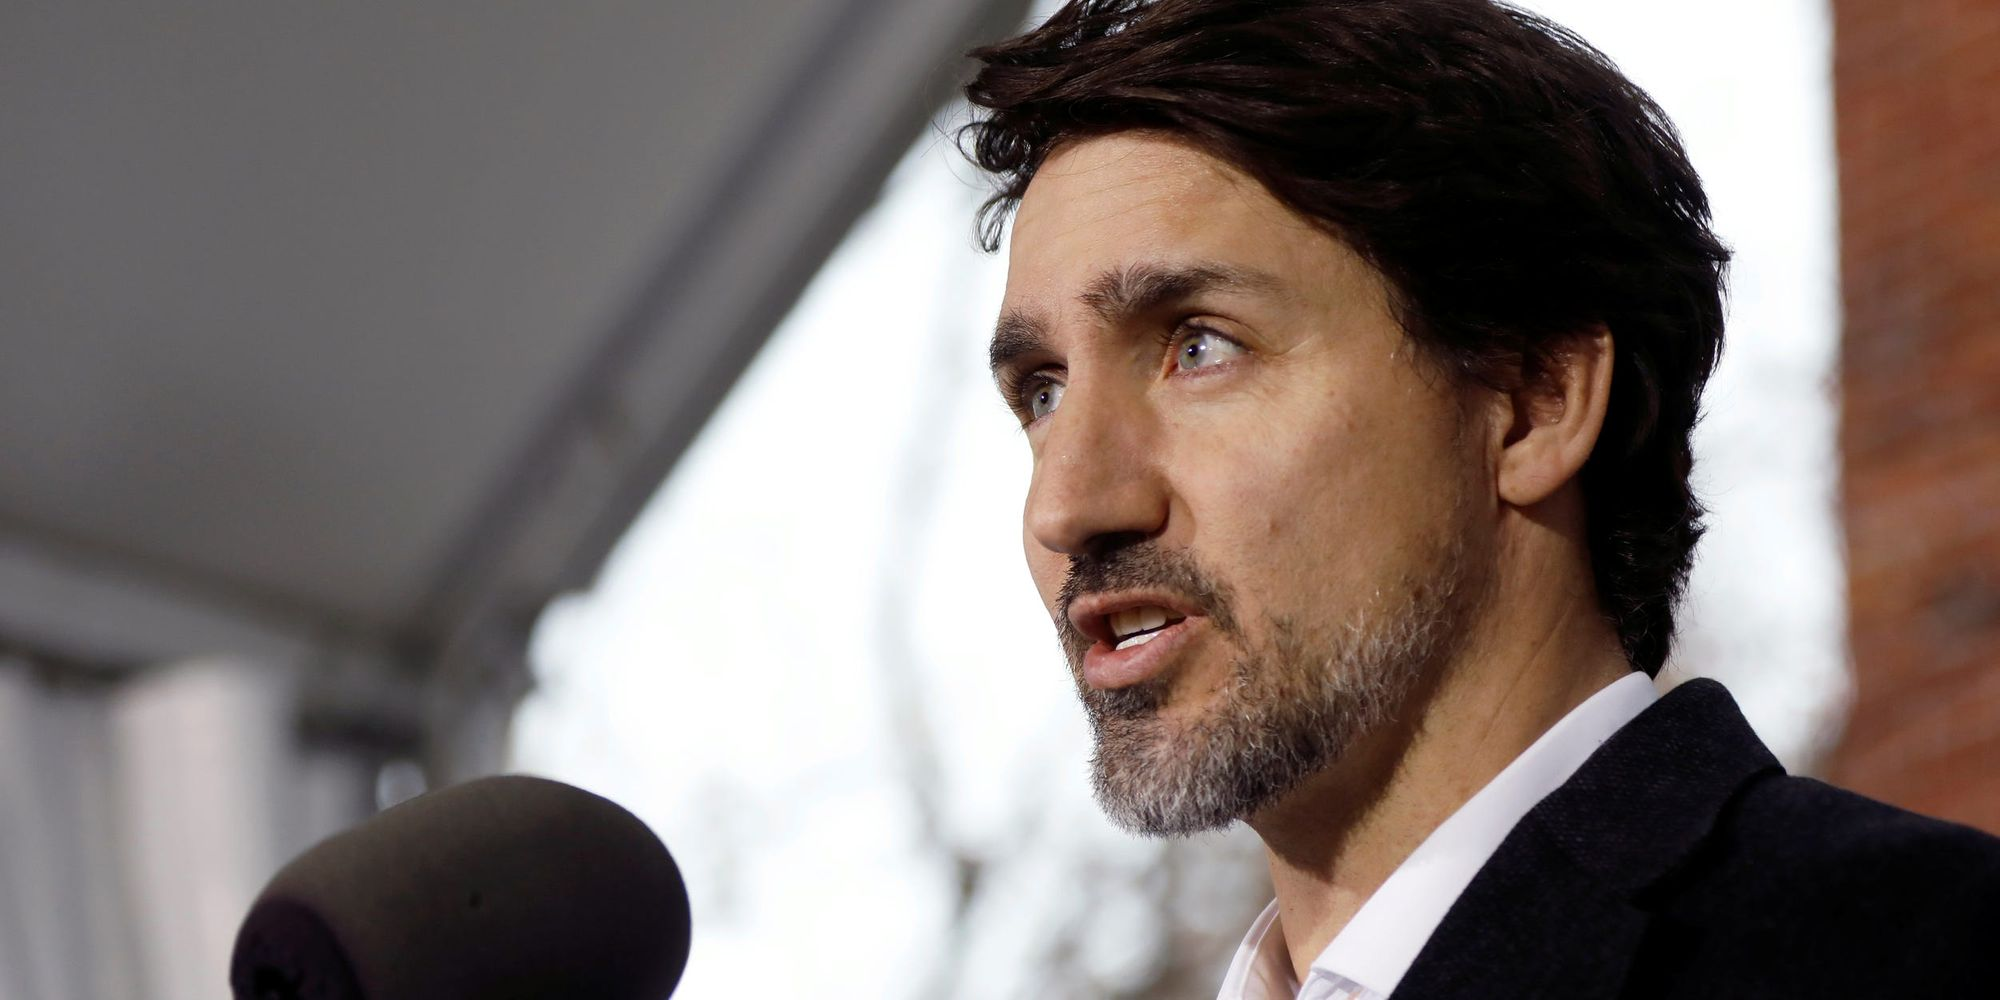 Trudeau government allows foreign worker permits while nearly 2.5 million Canadians are unemployed